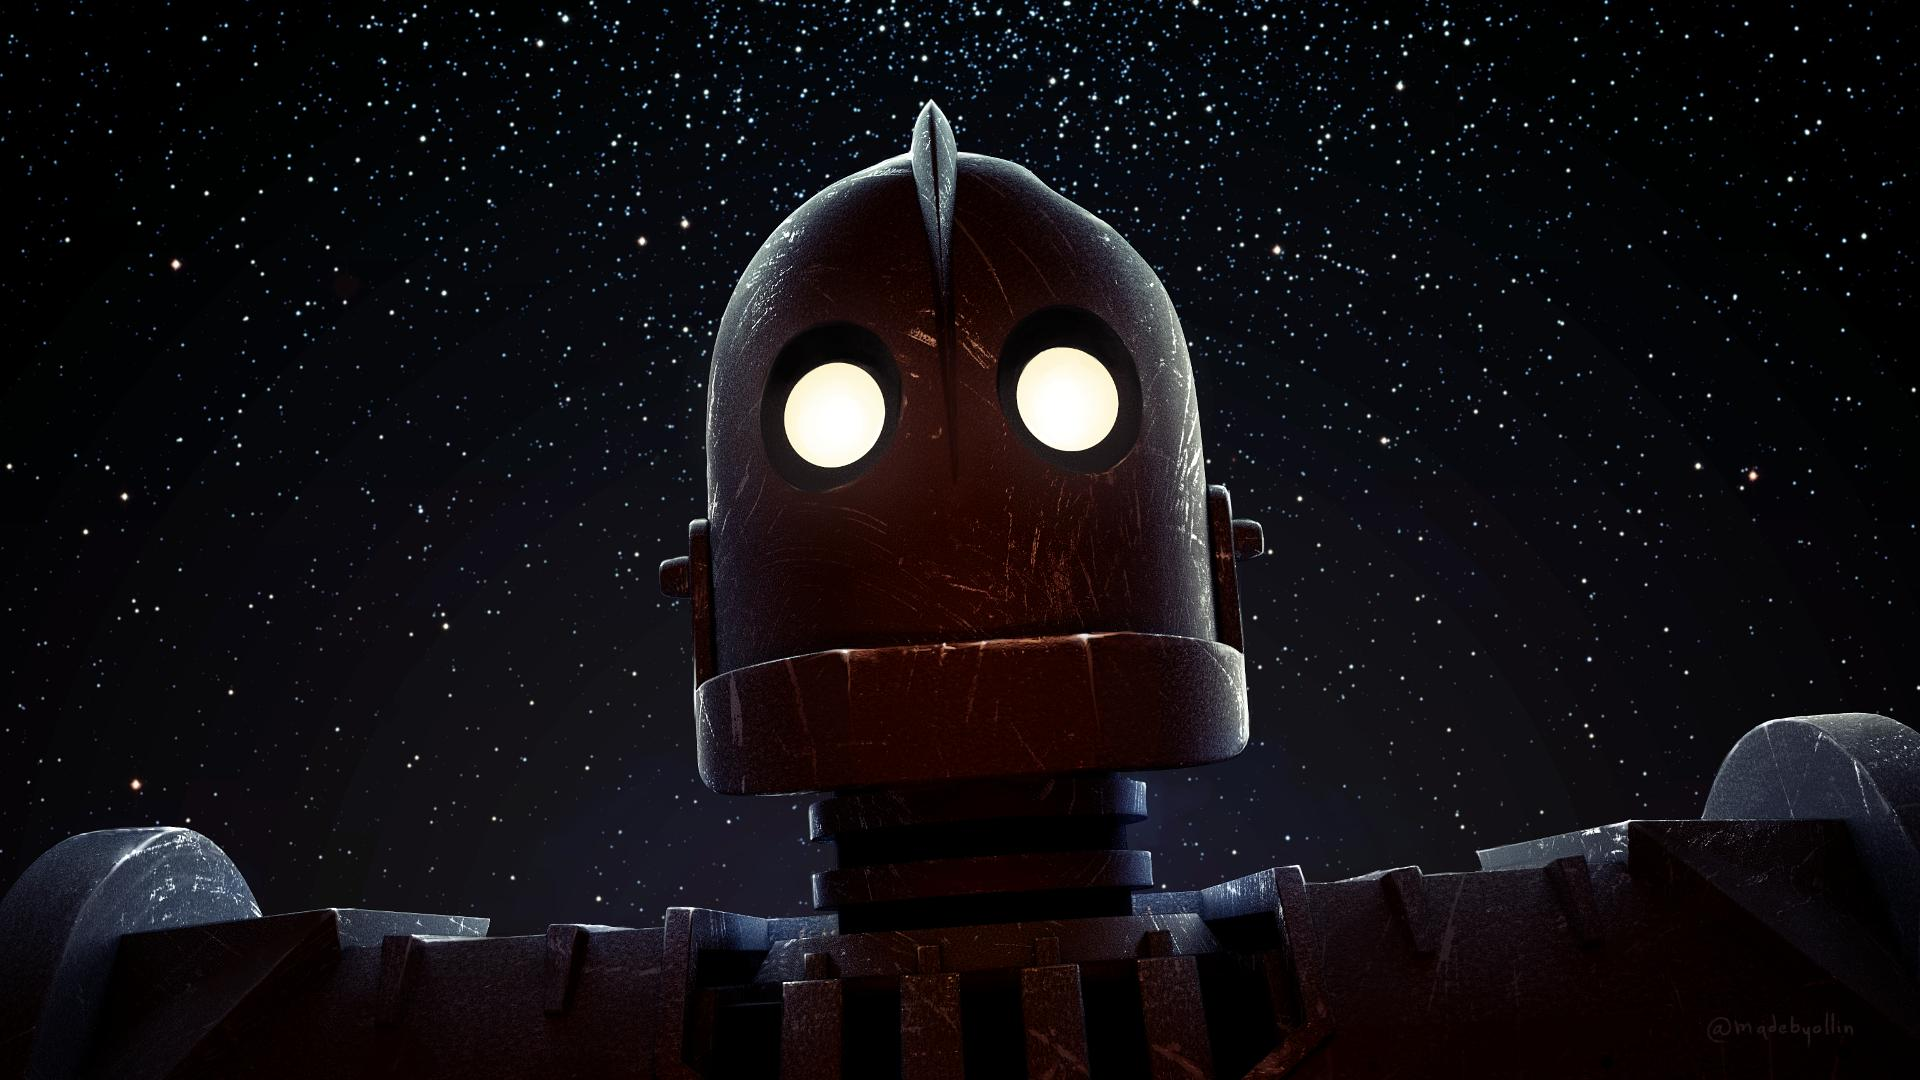 The Iron Giant stars lights movies Poster Home Decor Custom Fashion Classic Wall Sticker 4 sizes Free Shipping(China (Mainland))